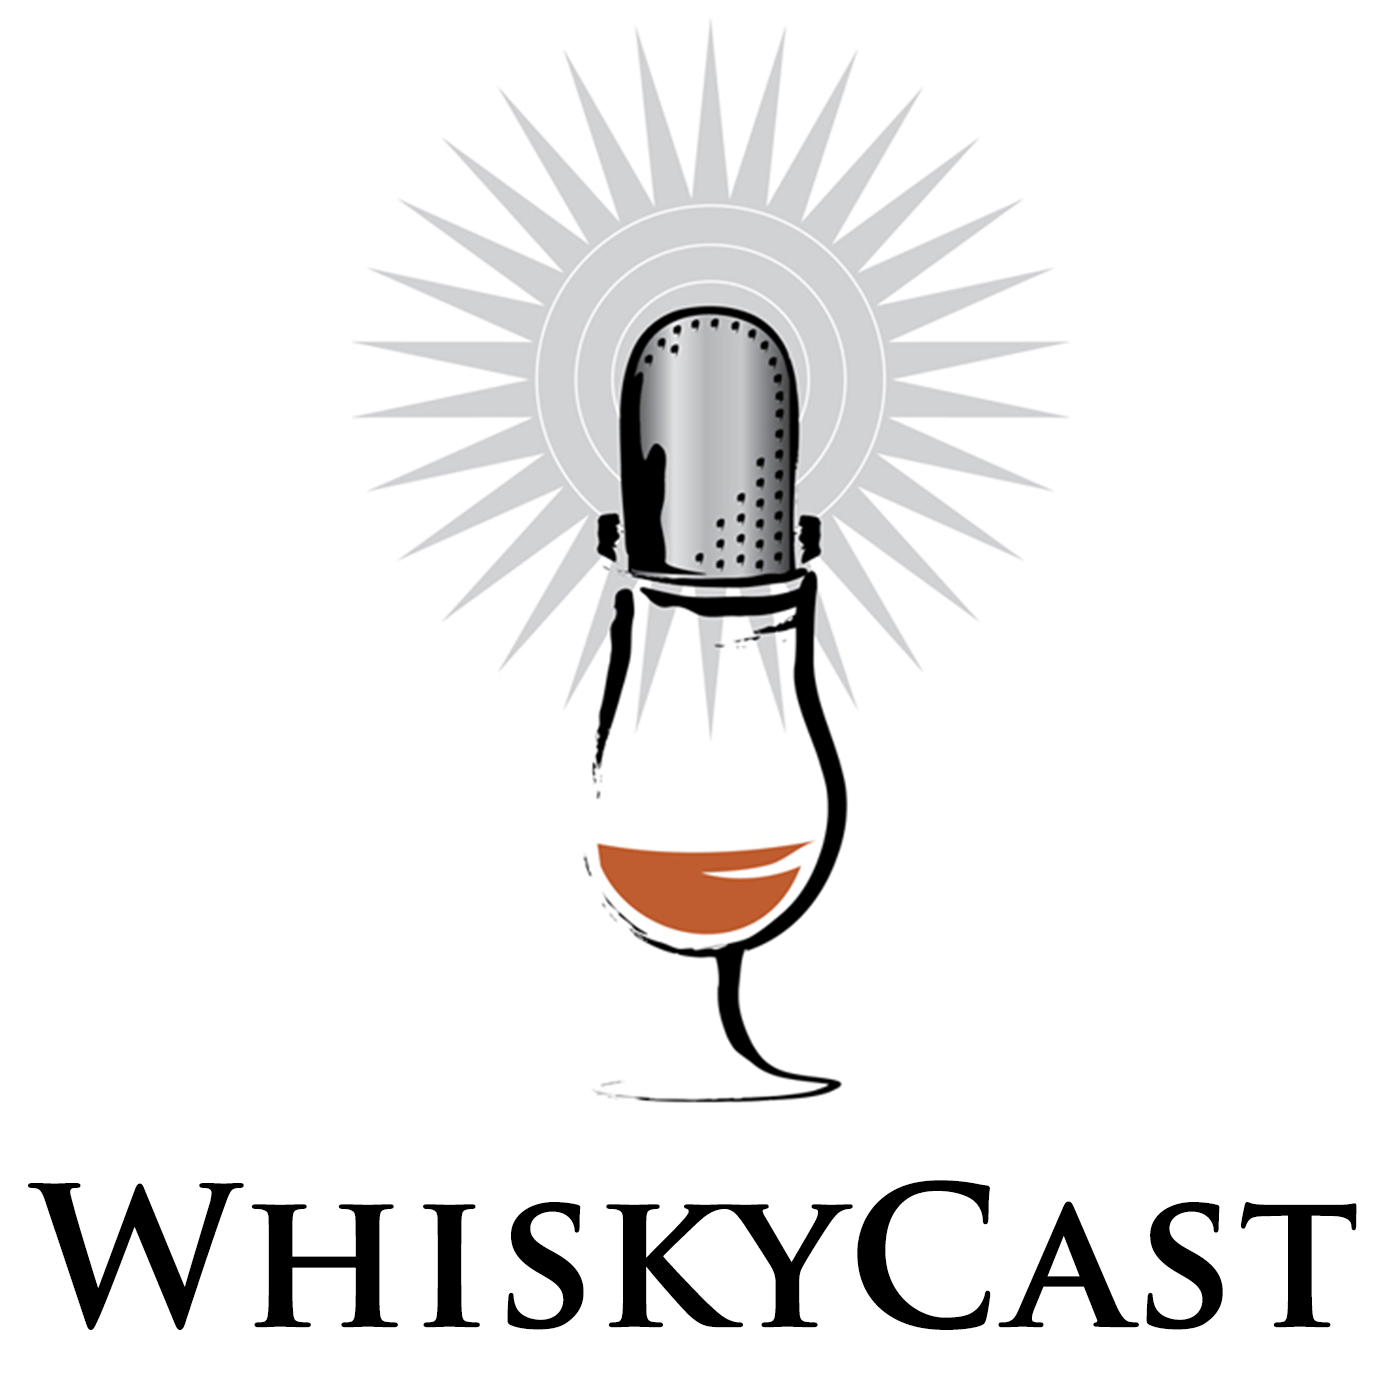 WhiskyCast Episode 423: May 4, 2013